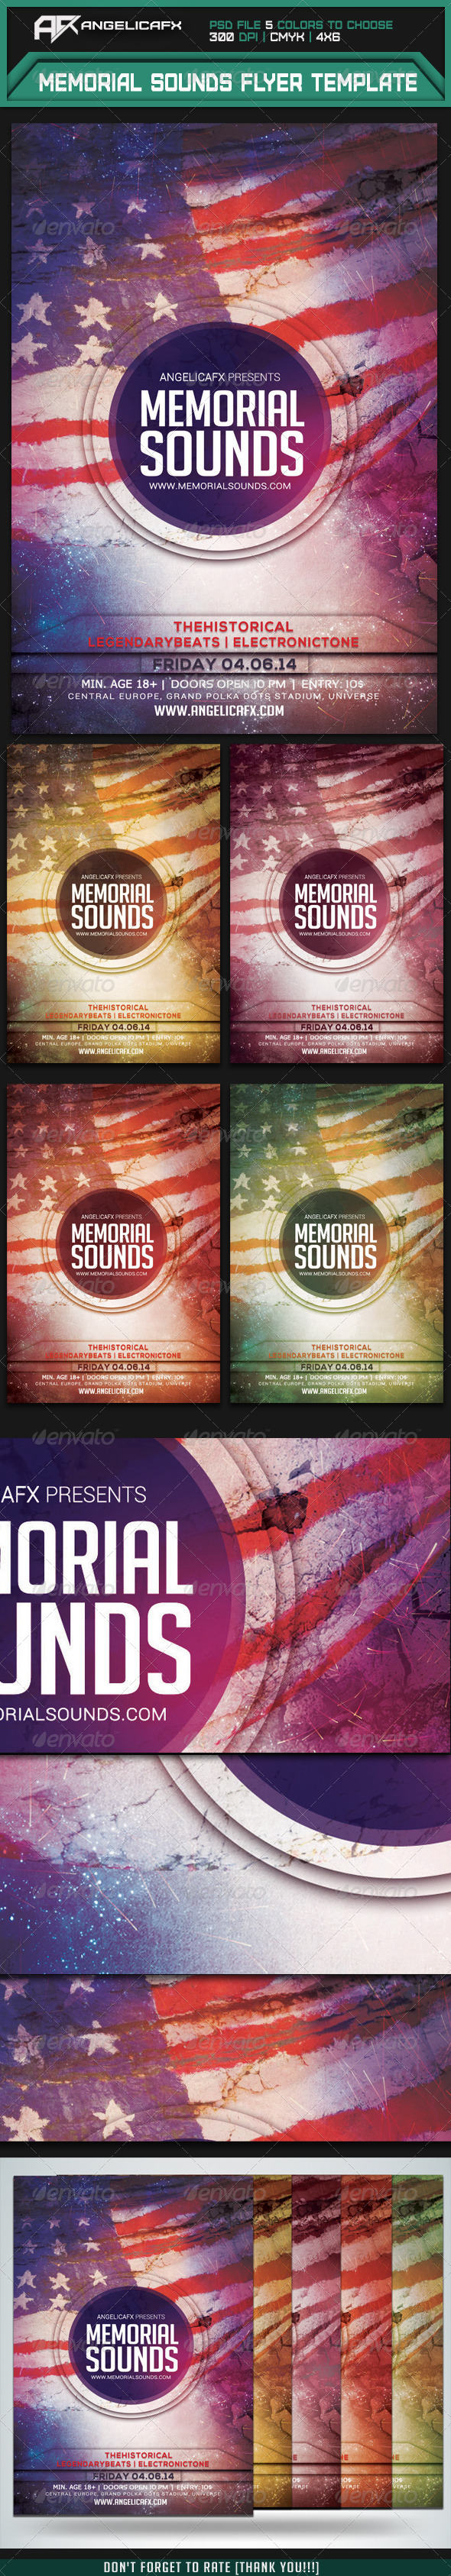 Memorial Sounds Flyer Template